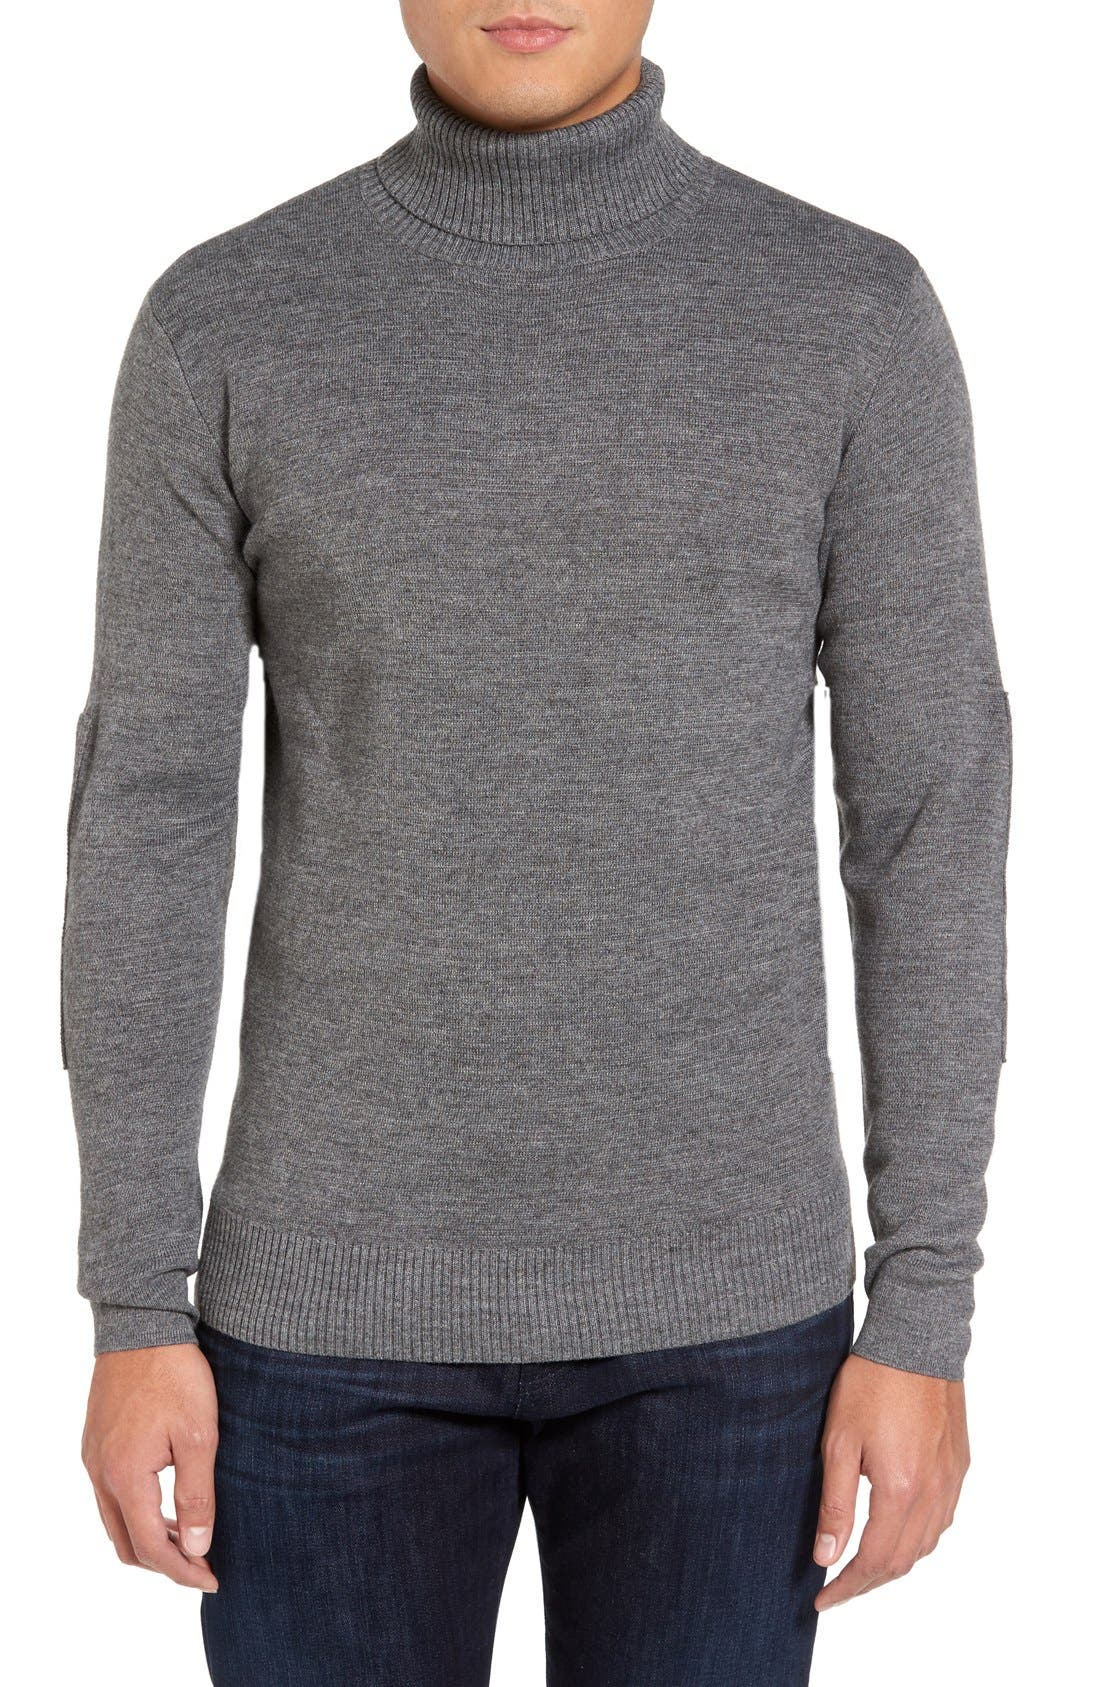 Main Image - Slate & Stone Merino Wool Blend Turtleneck Sweater